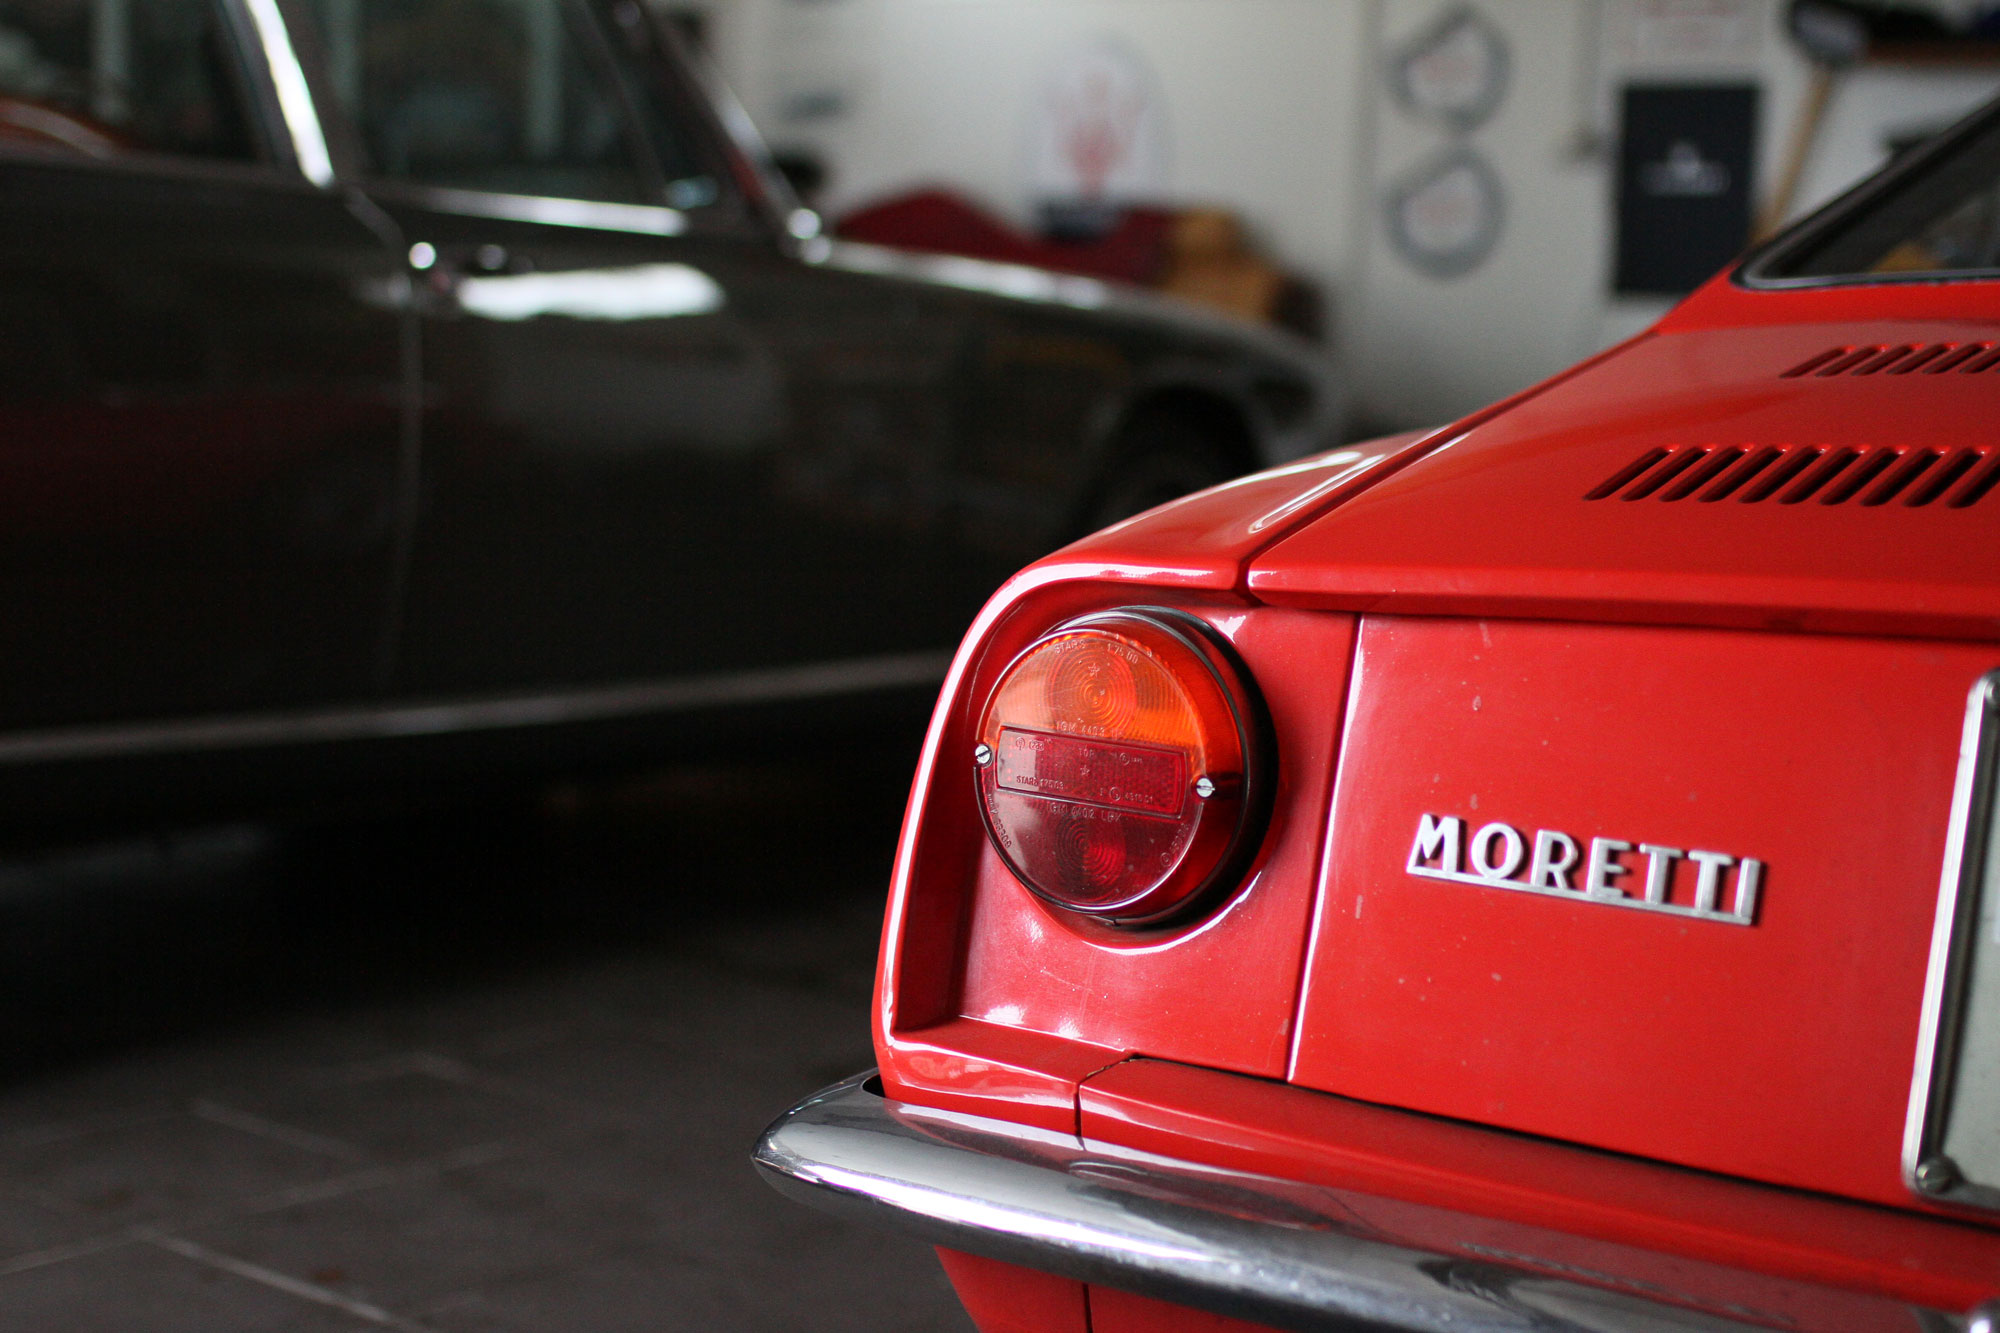 Moretti 850 from behind with Quattroporte behind, next to the garage